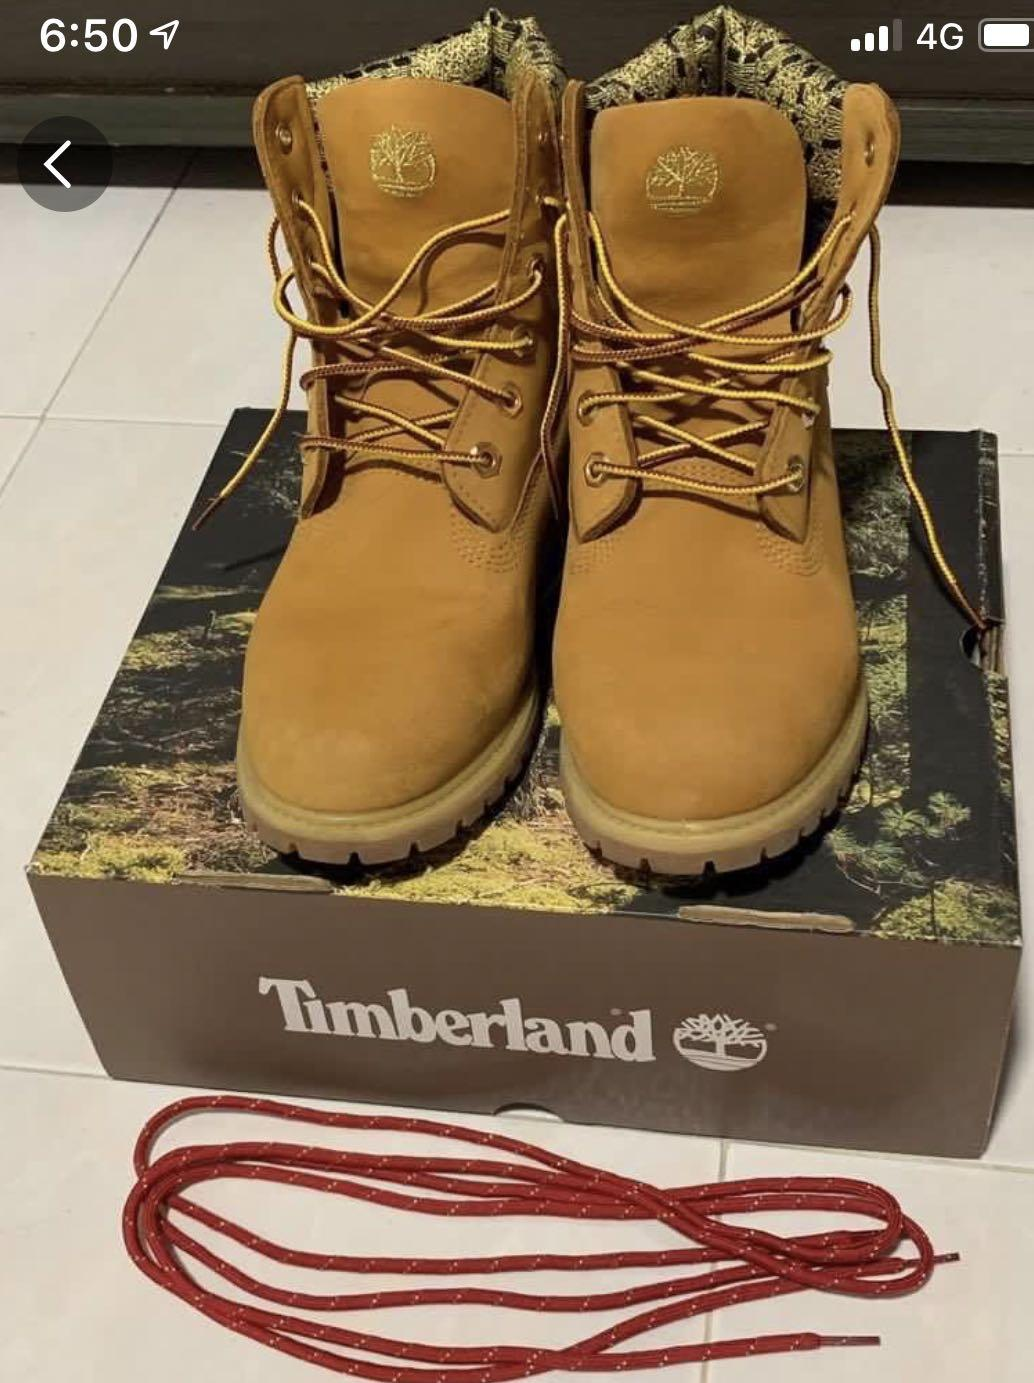 How To Know It's Original Timberland